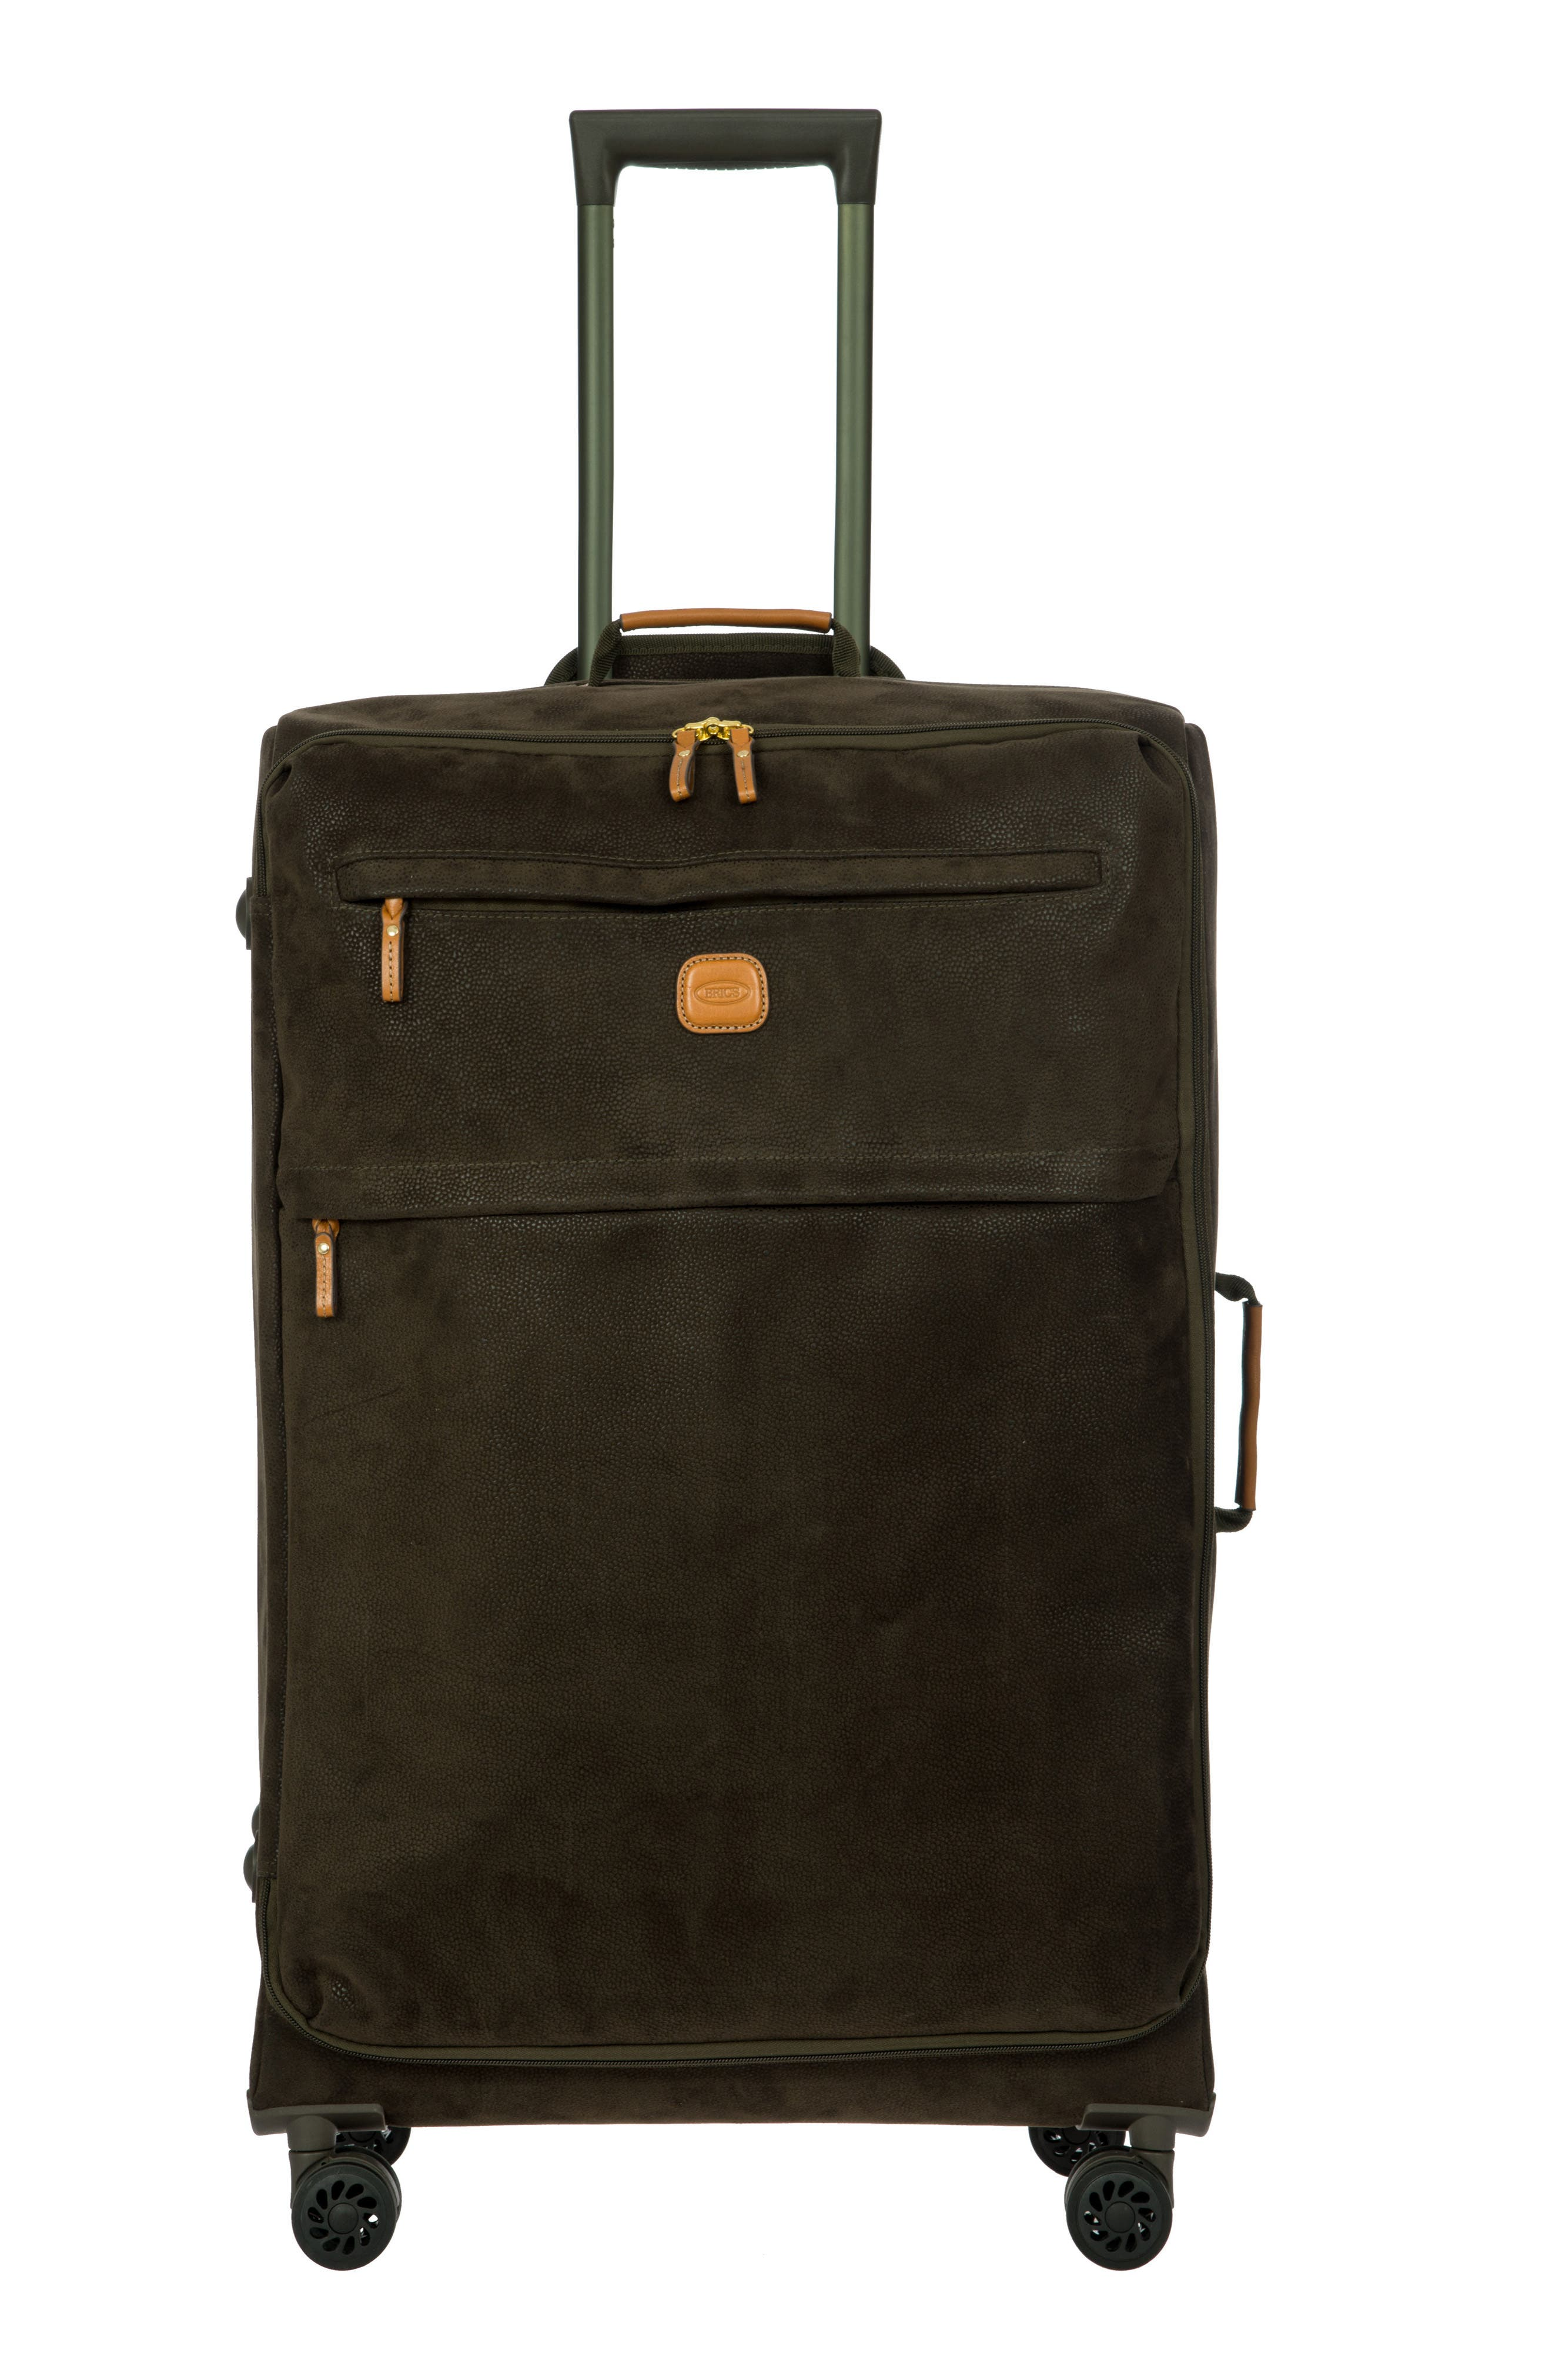 LIFE Collection 30-Inch Wheeled Suitcase,                             Alternate thumbnail 8, color,                             Olive